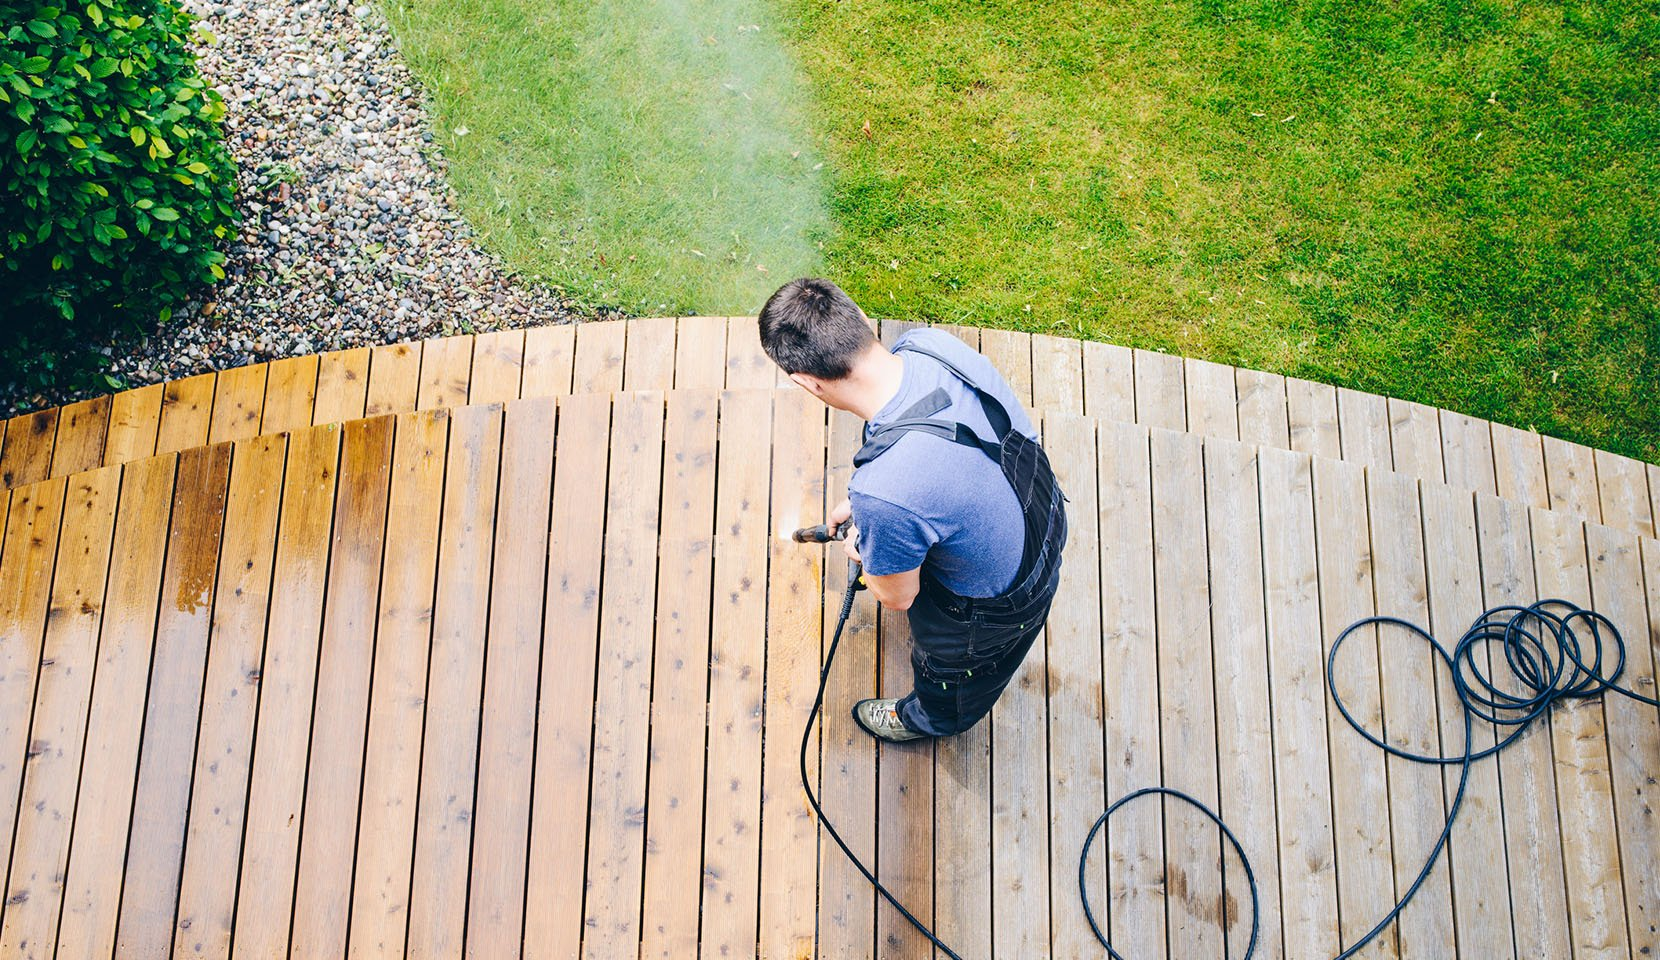 Man powerwashing an outdoor deck